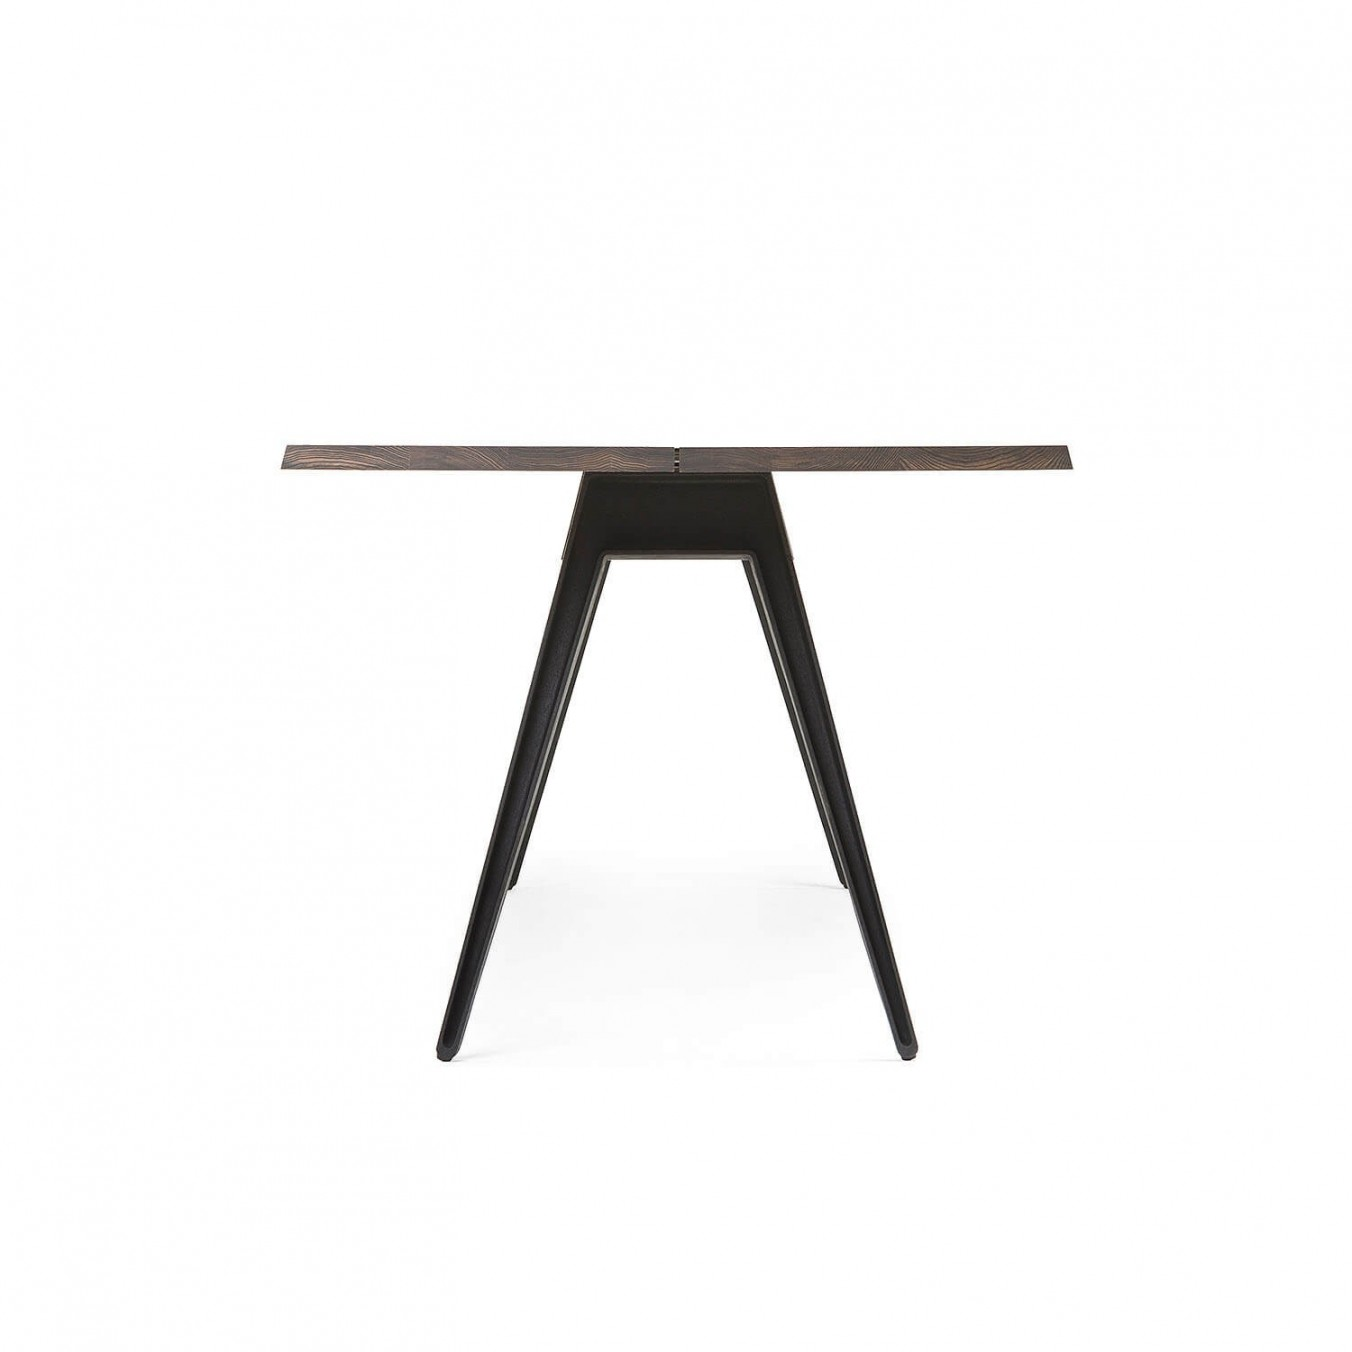 WELLES TABLE